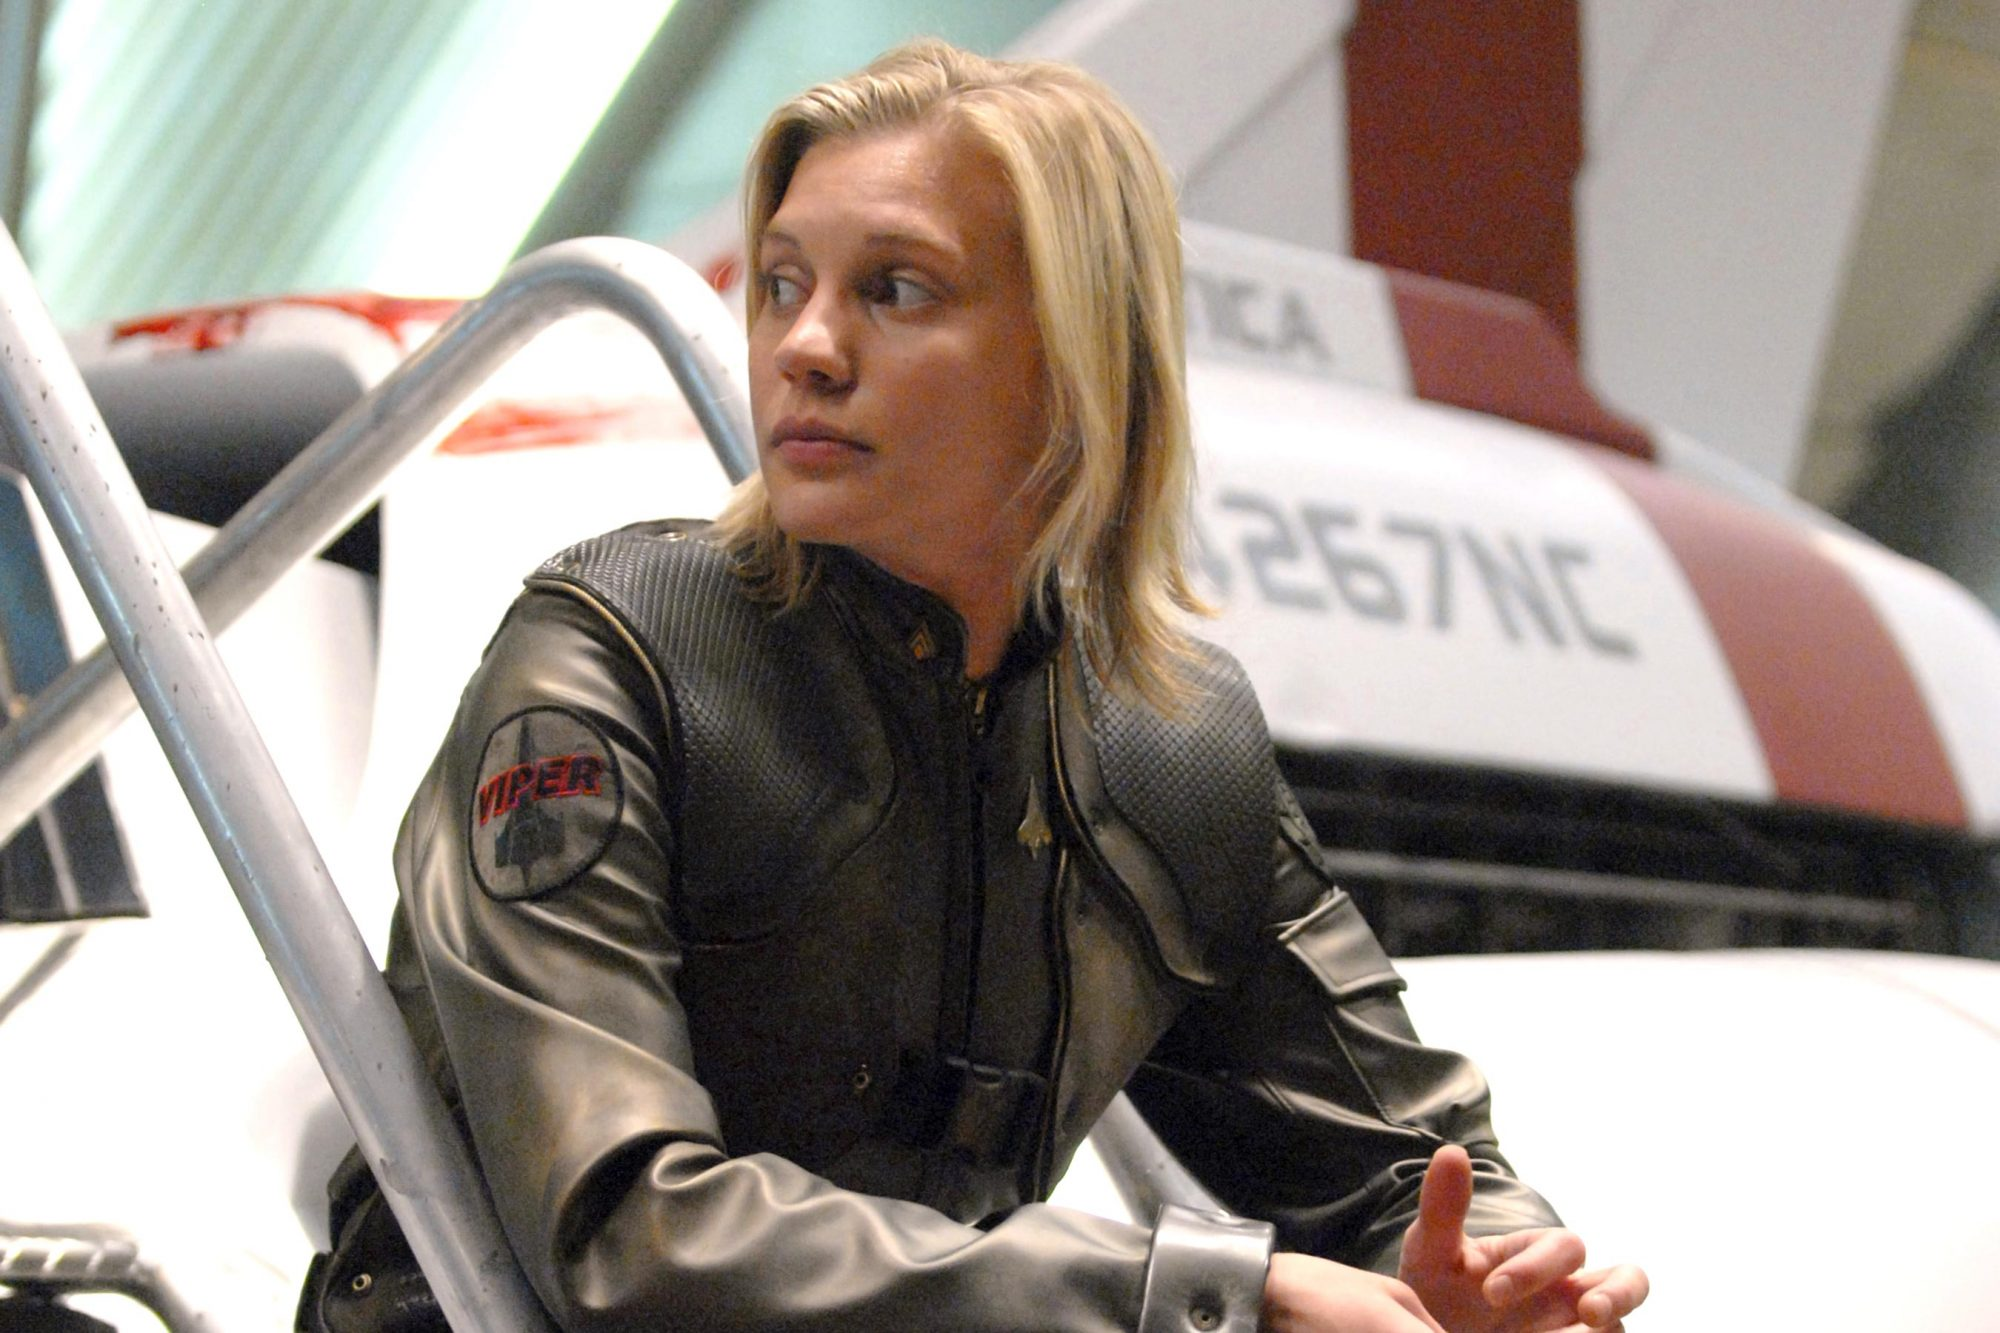 BATTLESTAR GALACTICA, Katee Sackhoff, 'He That Believeth in Me', (Season 4, episode 1, aired April 4